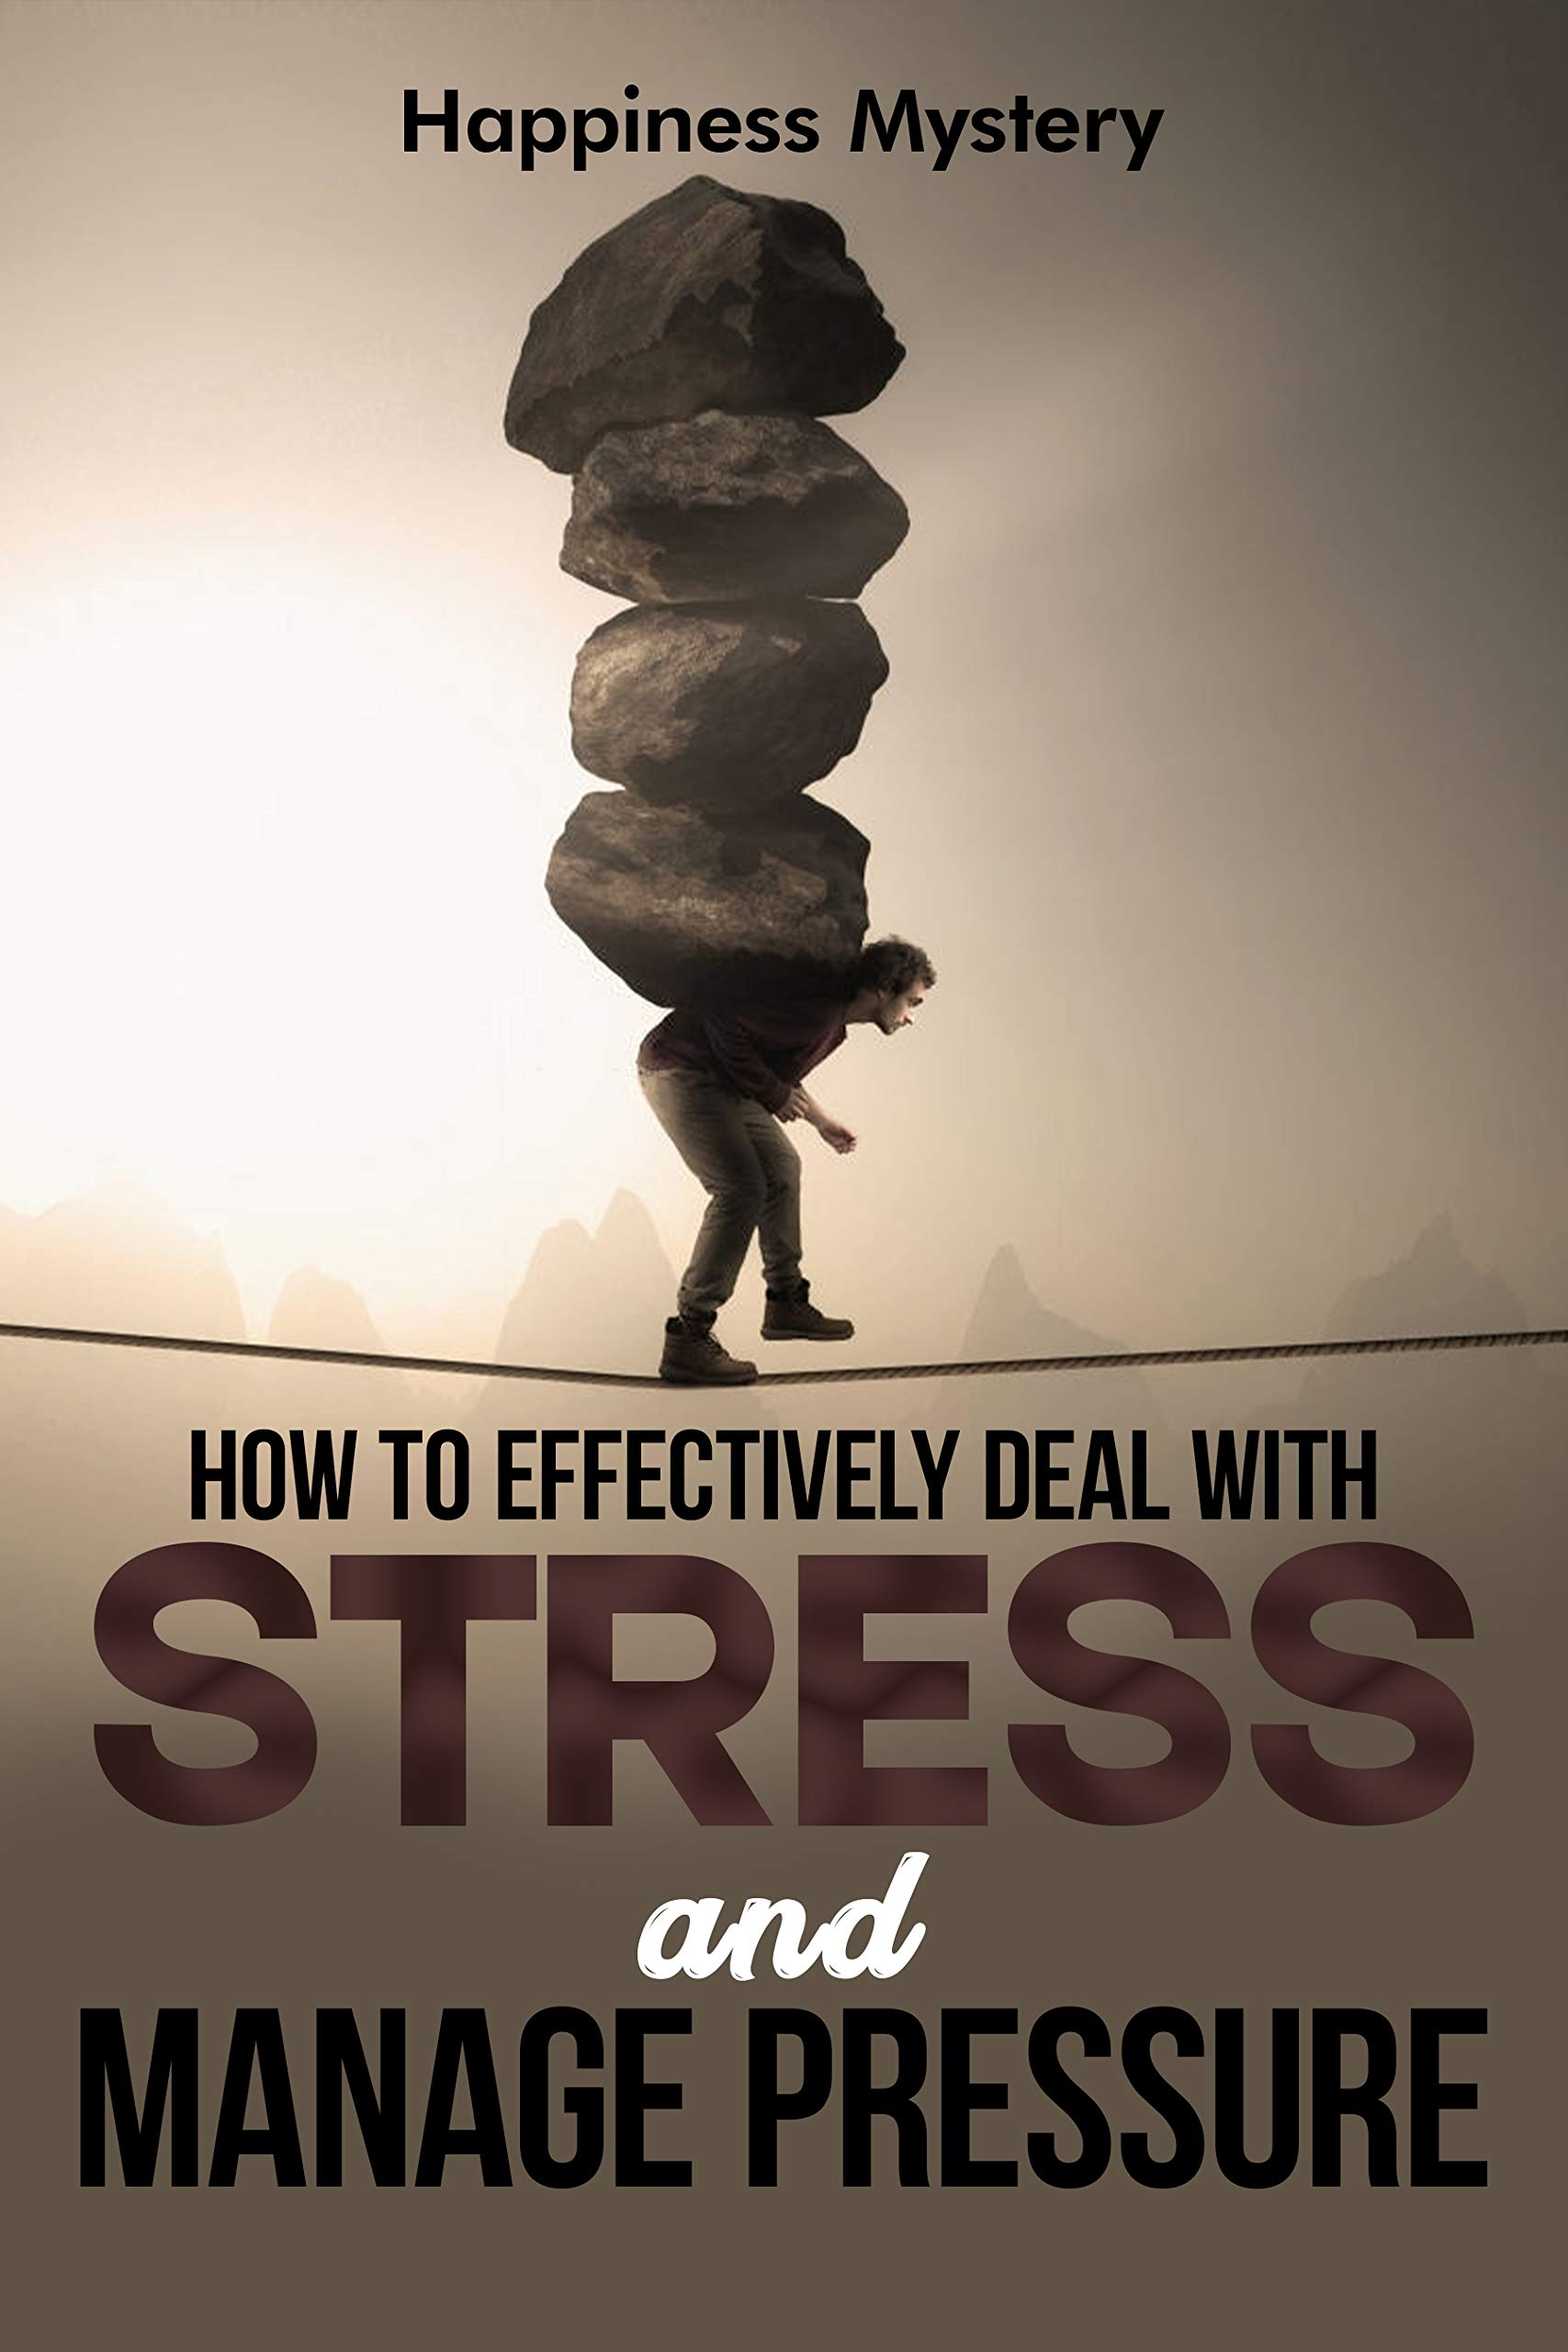 How To Effectively Deal With Stress, and Manage Pressure